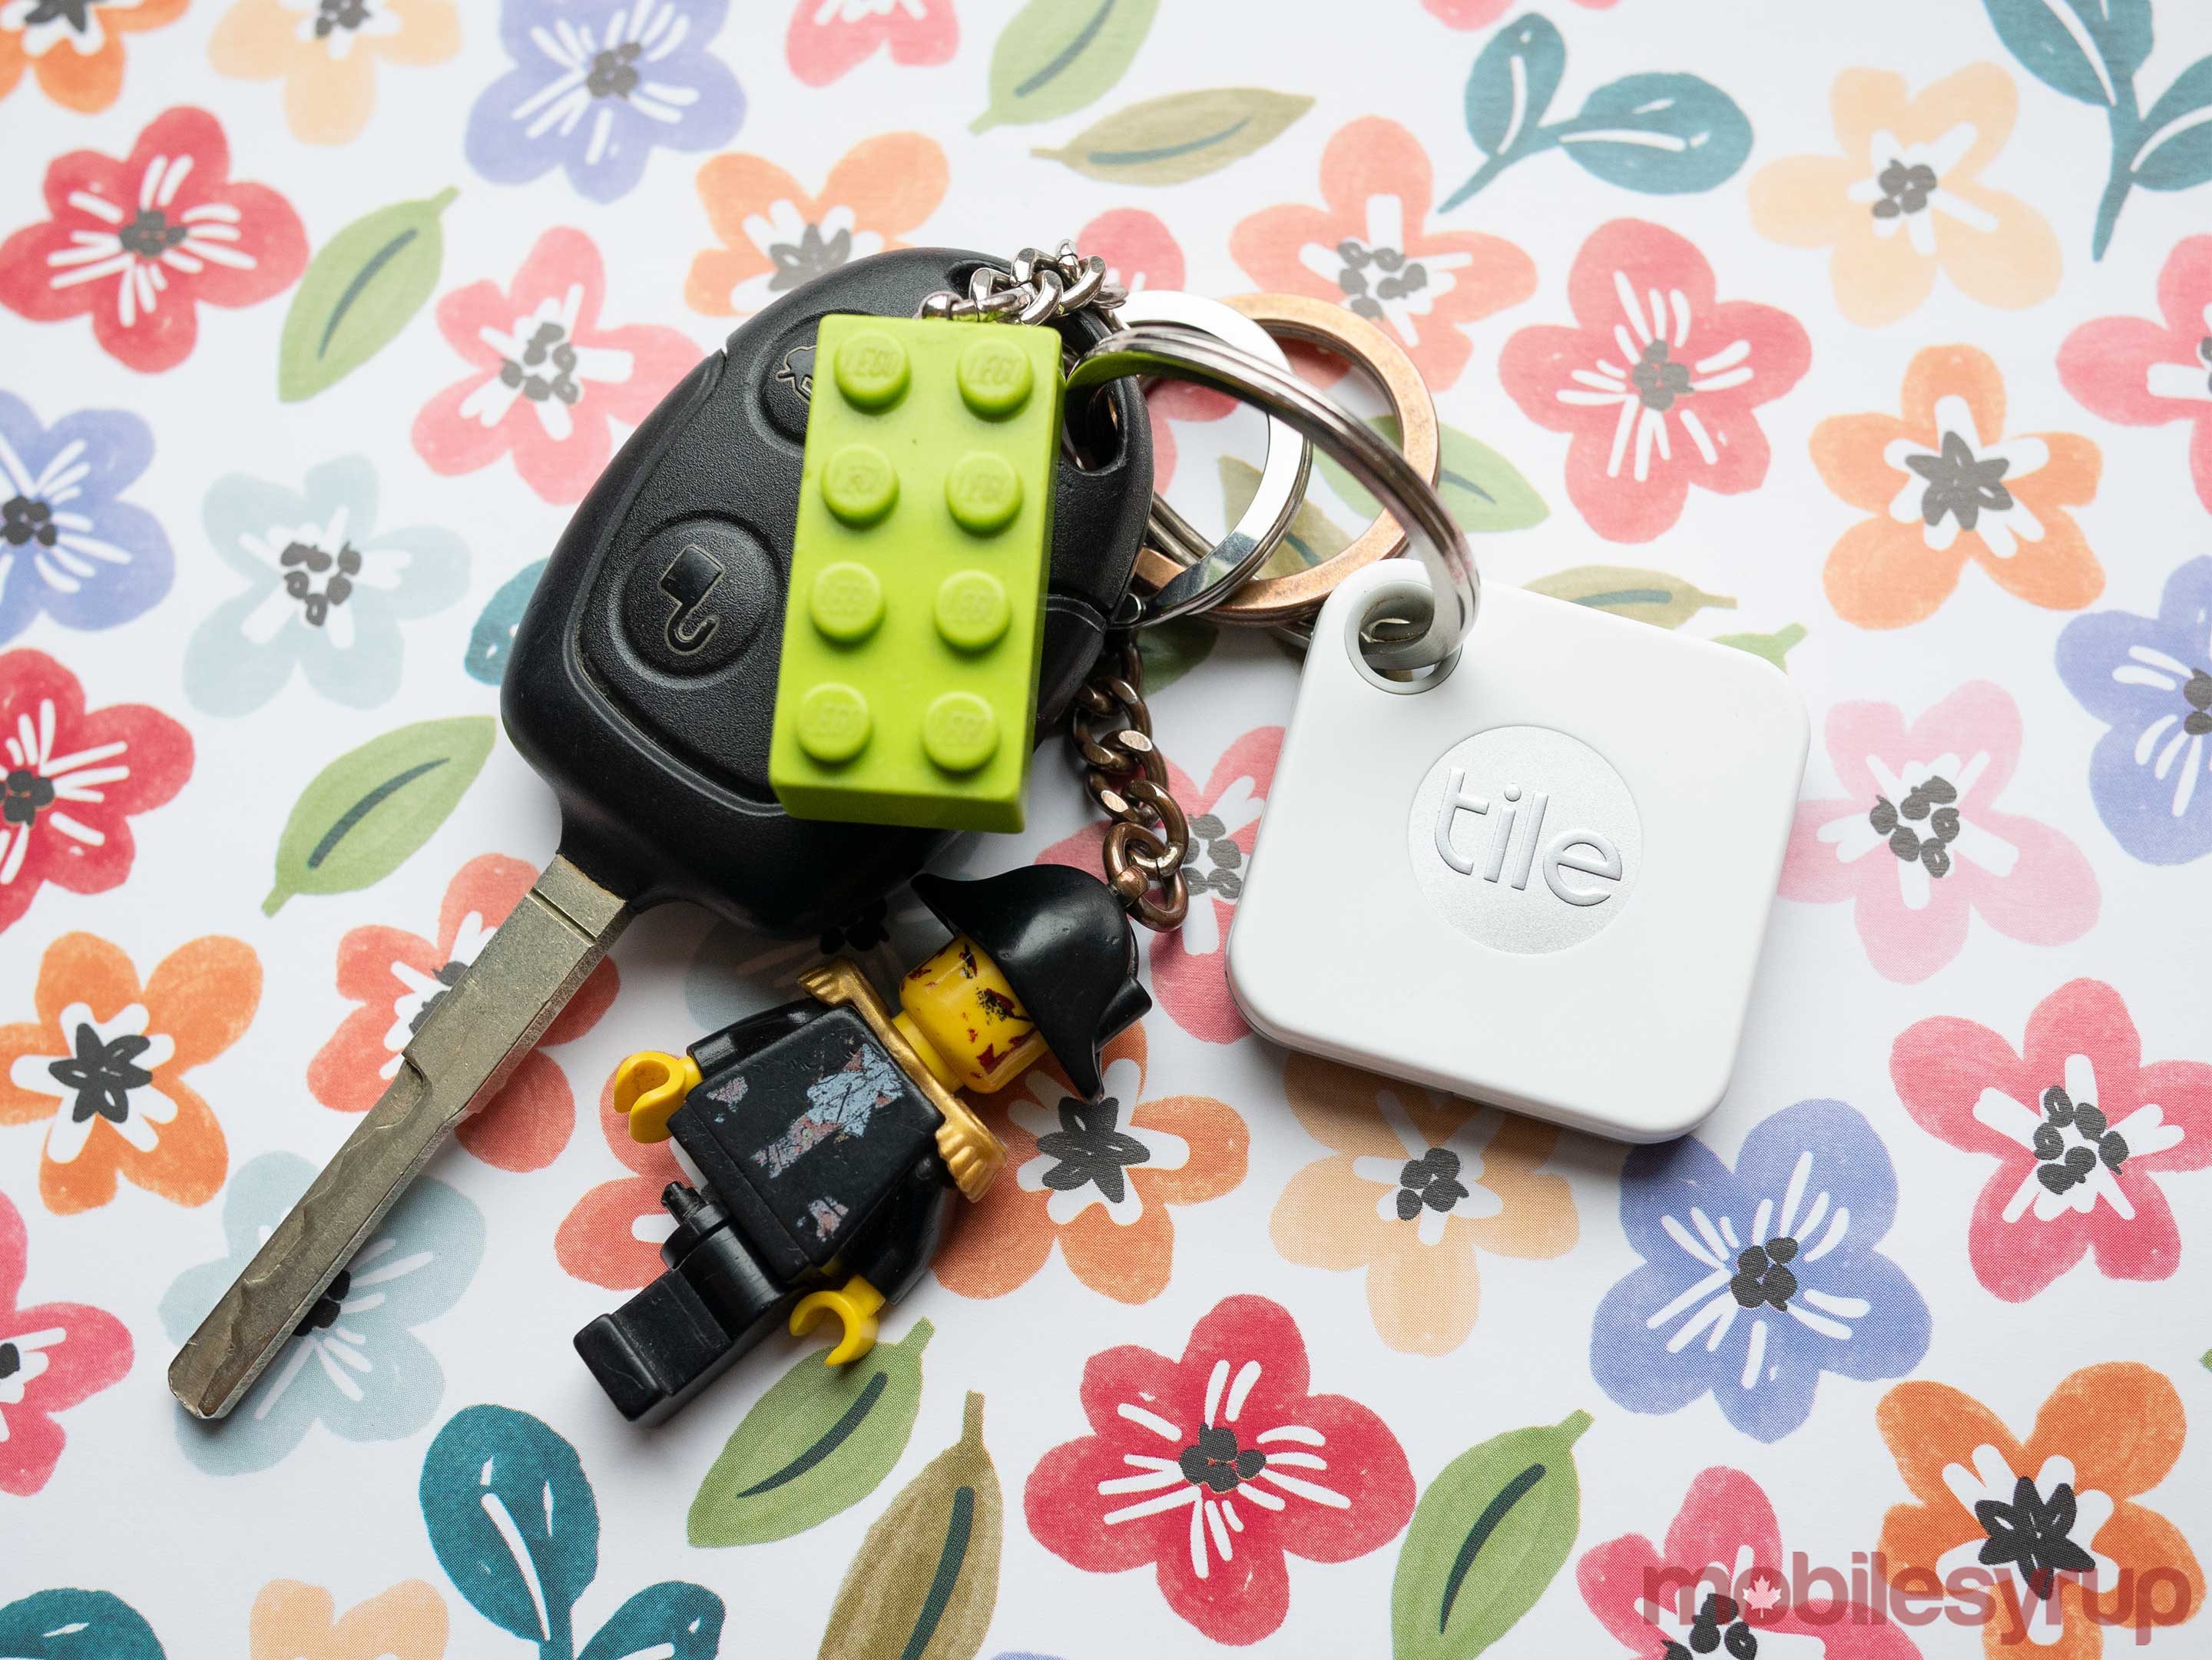 Tile Mate on keychain